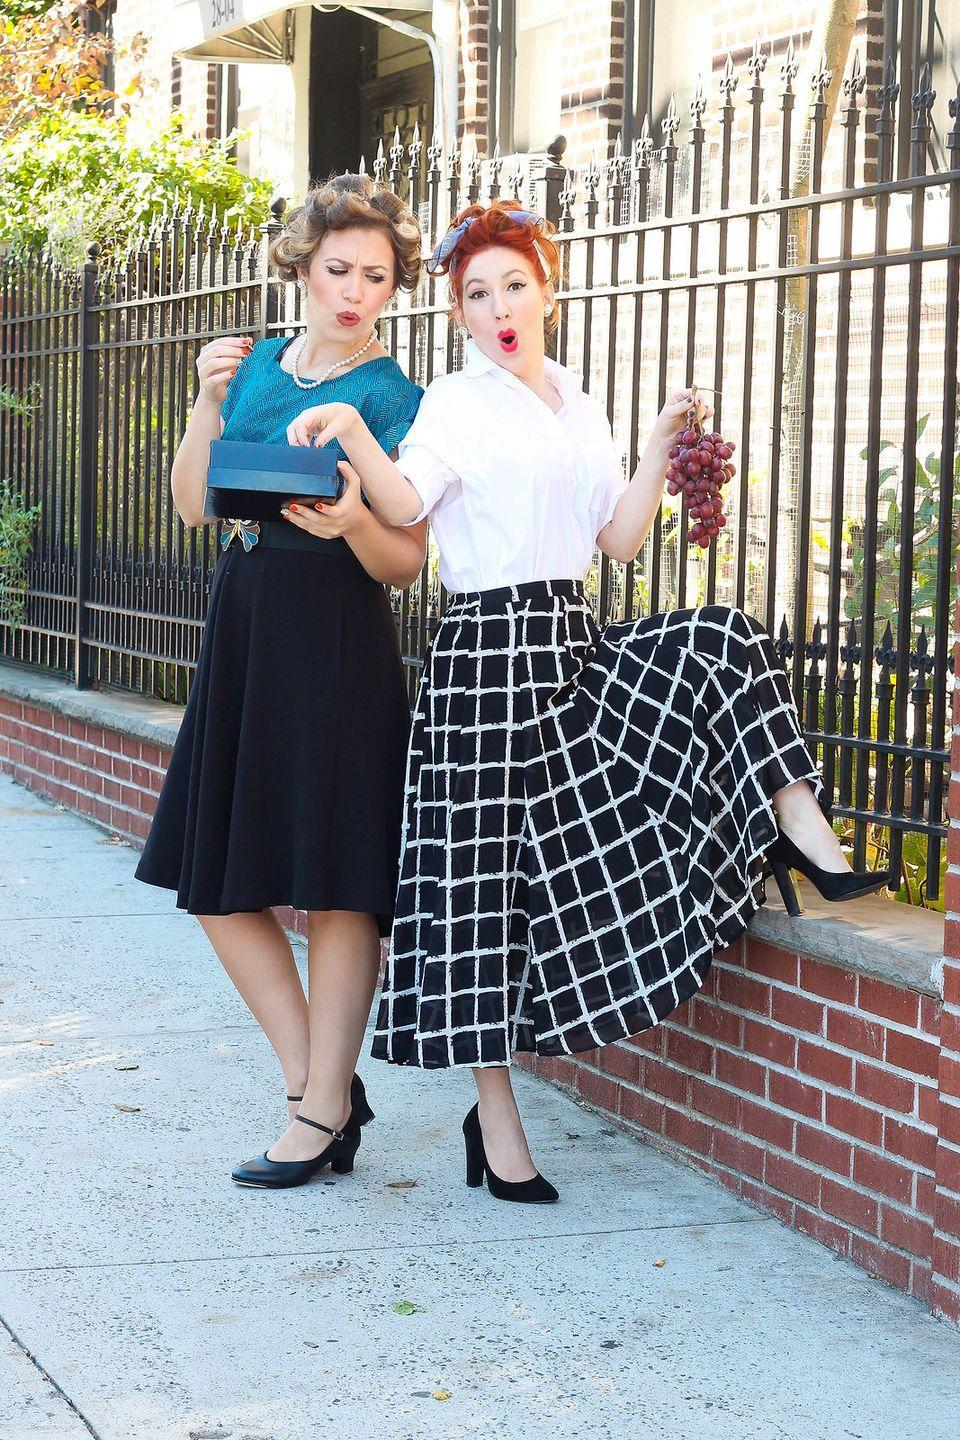 """<p>There's a good chance you have everything you need in your closet to recreate this iconic duo — and if not, your mom probably does! </p><p><em><a href=""""http://livingaftermidnite.com/2017/10/best-friend-halloween-costumes.html"""" rel=""""nofollow noopener"""" target=""""_blank"""" data-ylk=""""slk:Get the tutorial at Living After Midnite >>"""" class=""""link rapid-noclick-resp"""">Get the tutorial at Living After Midnite >></a></em></p>"""